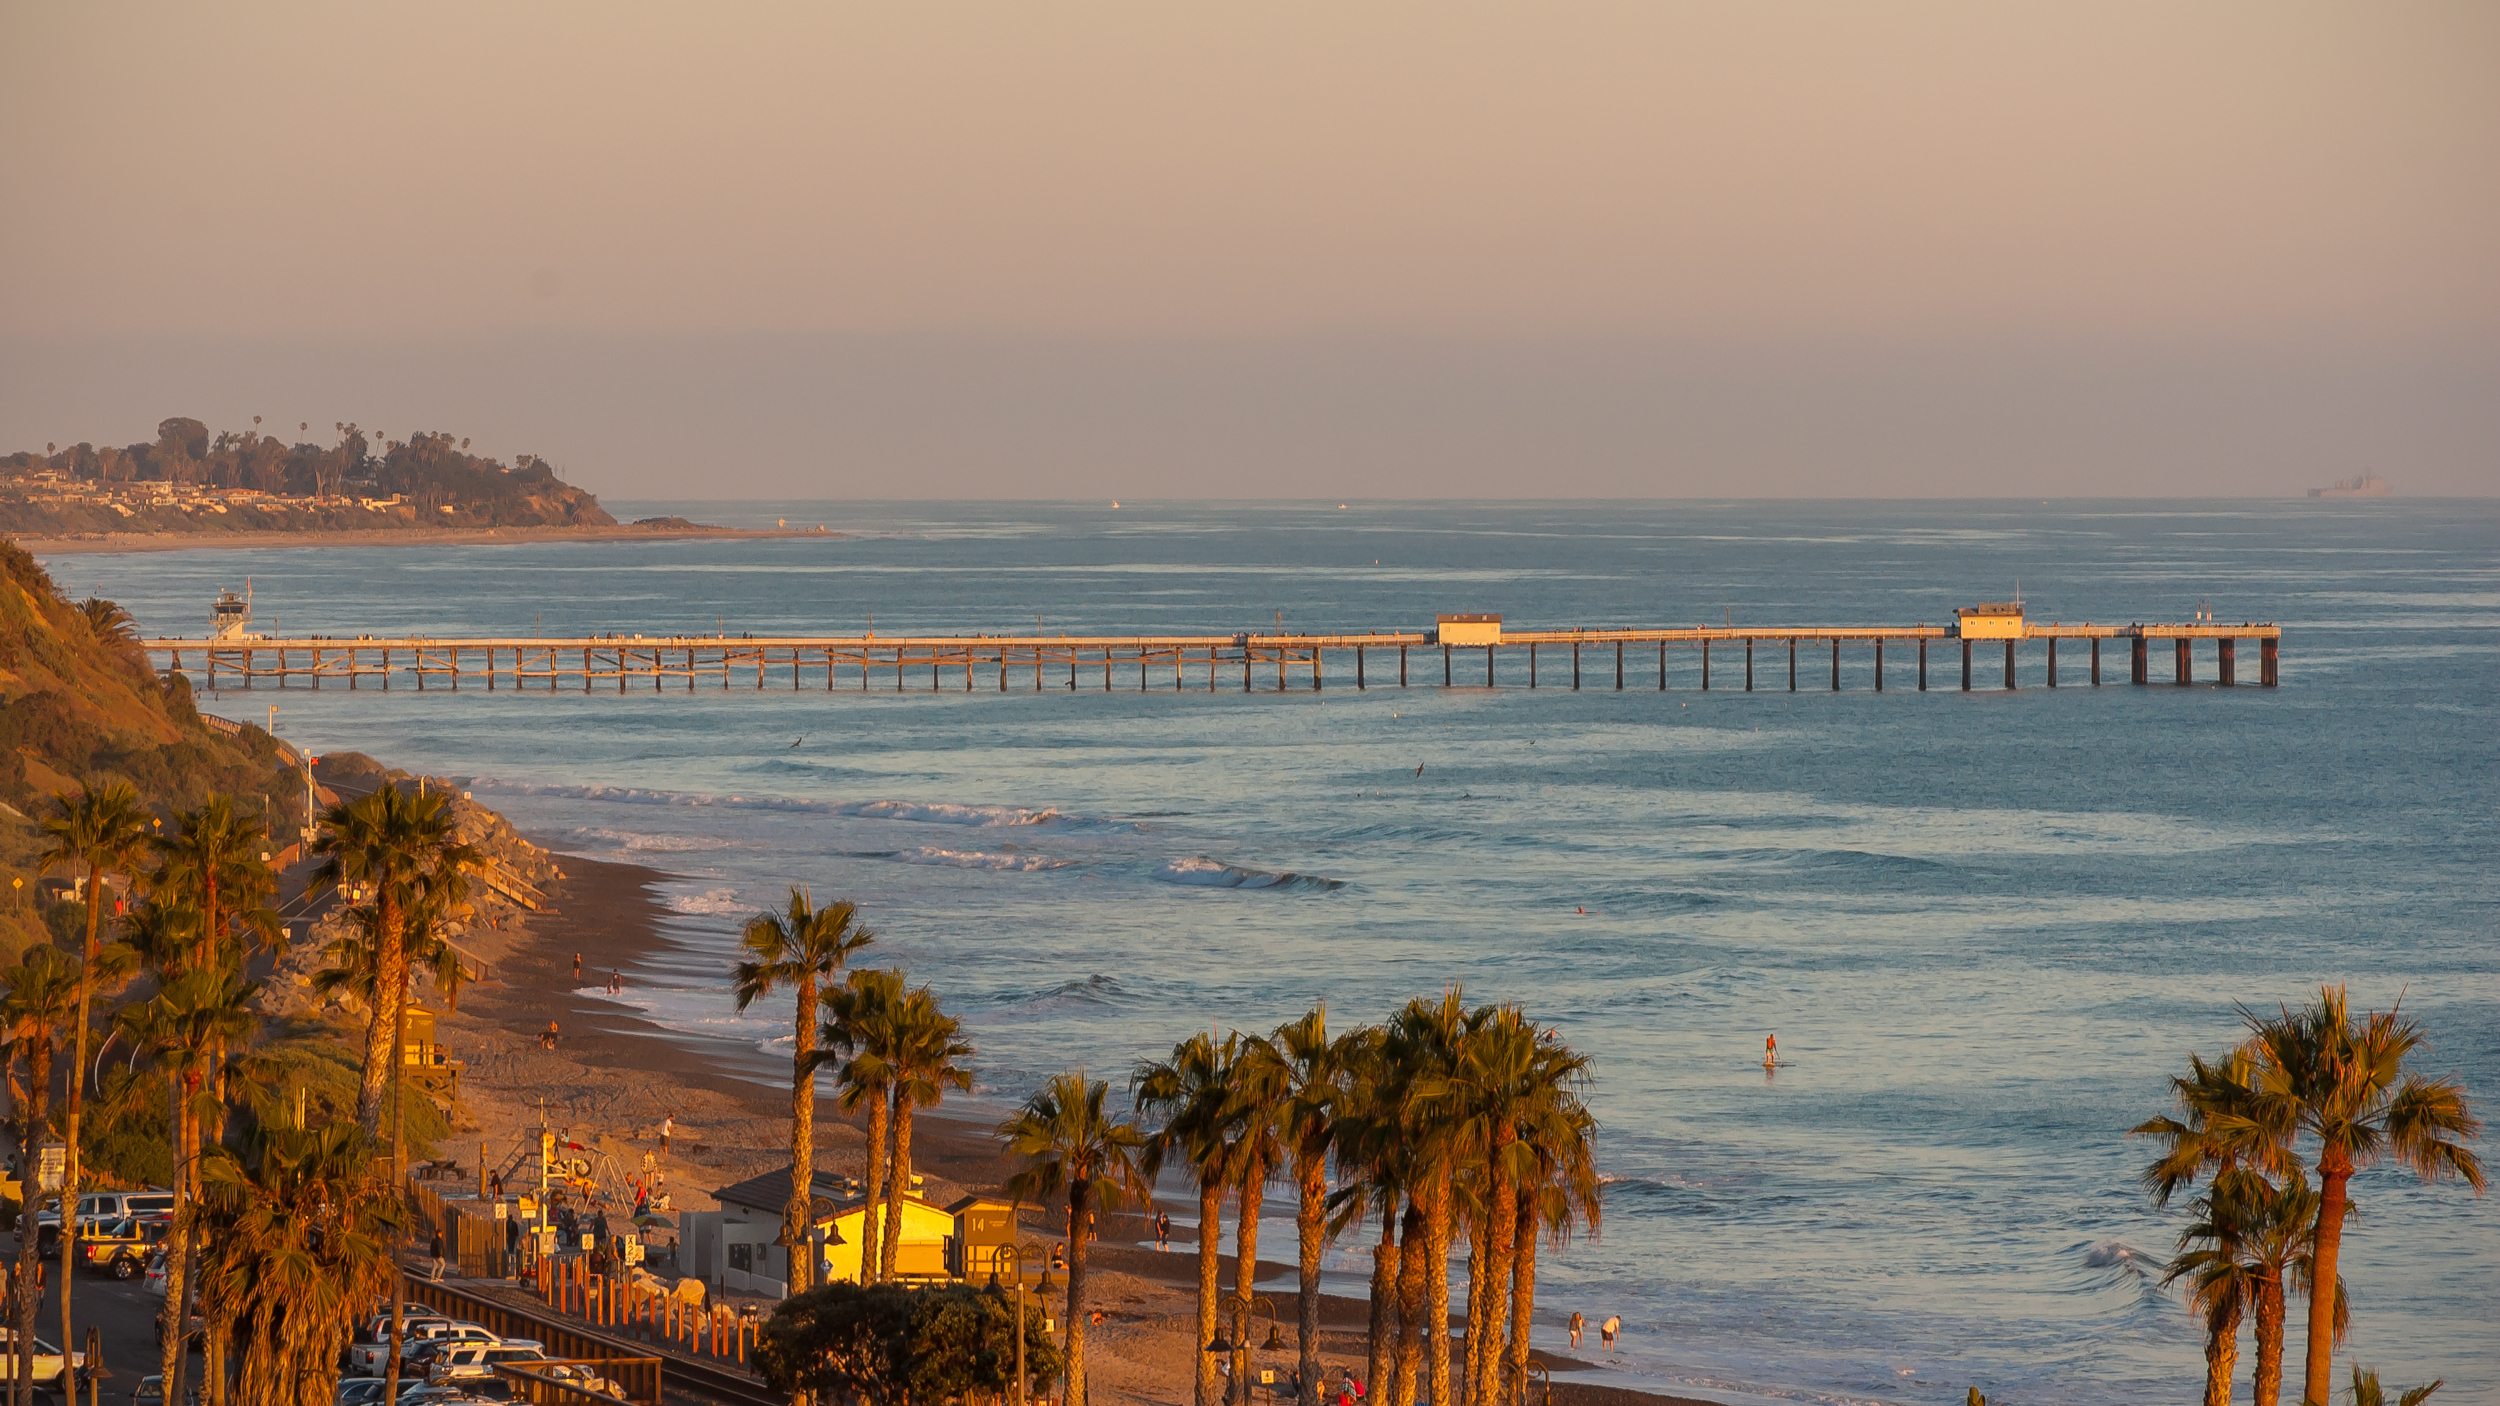 Using a effective focal length of 300mm from an elevated perspective, you can let viewers meander their way through the coastline of an entire city. San Clemente, CA.